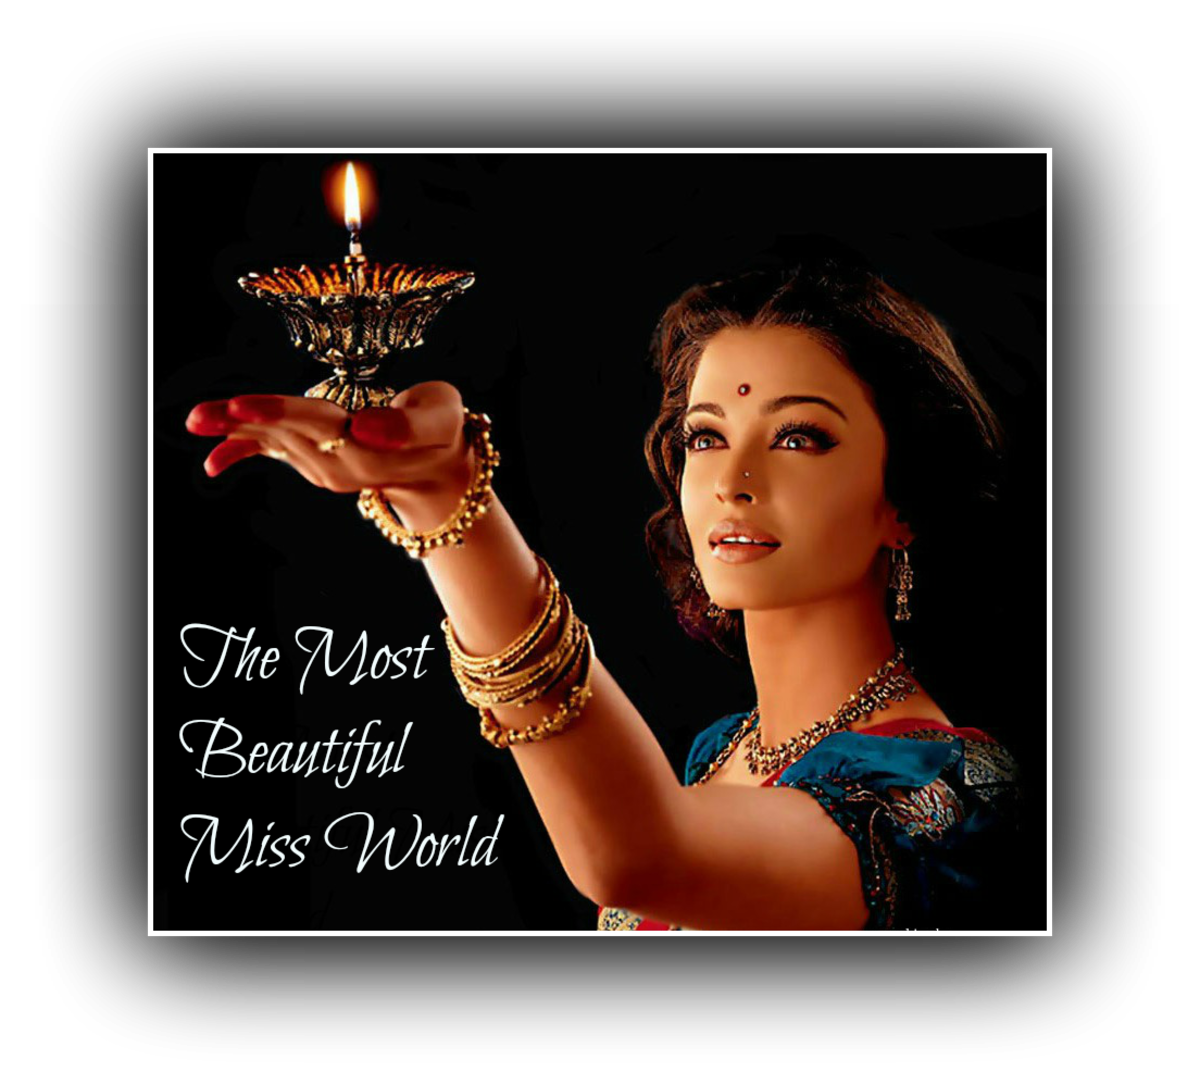 Aishwarya Rai, The Most Beautiful Miss World